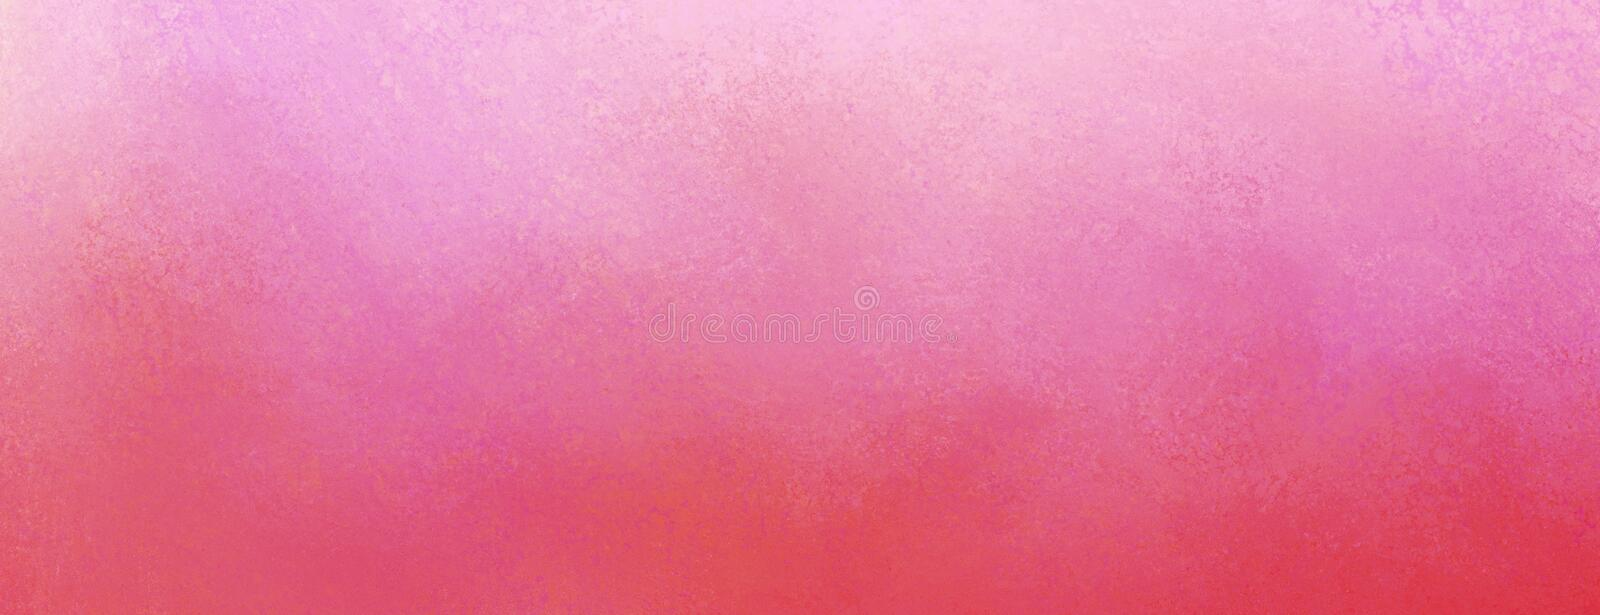 Vintage pink background with distressed purple texture and pastel border design royalty free stock images